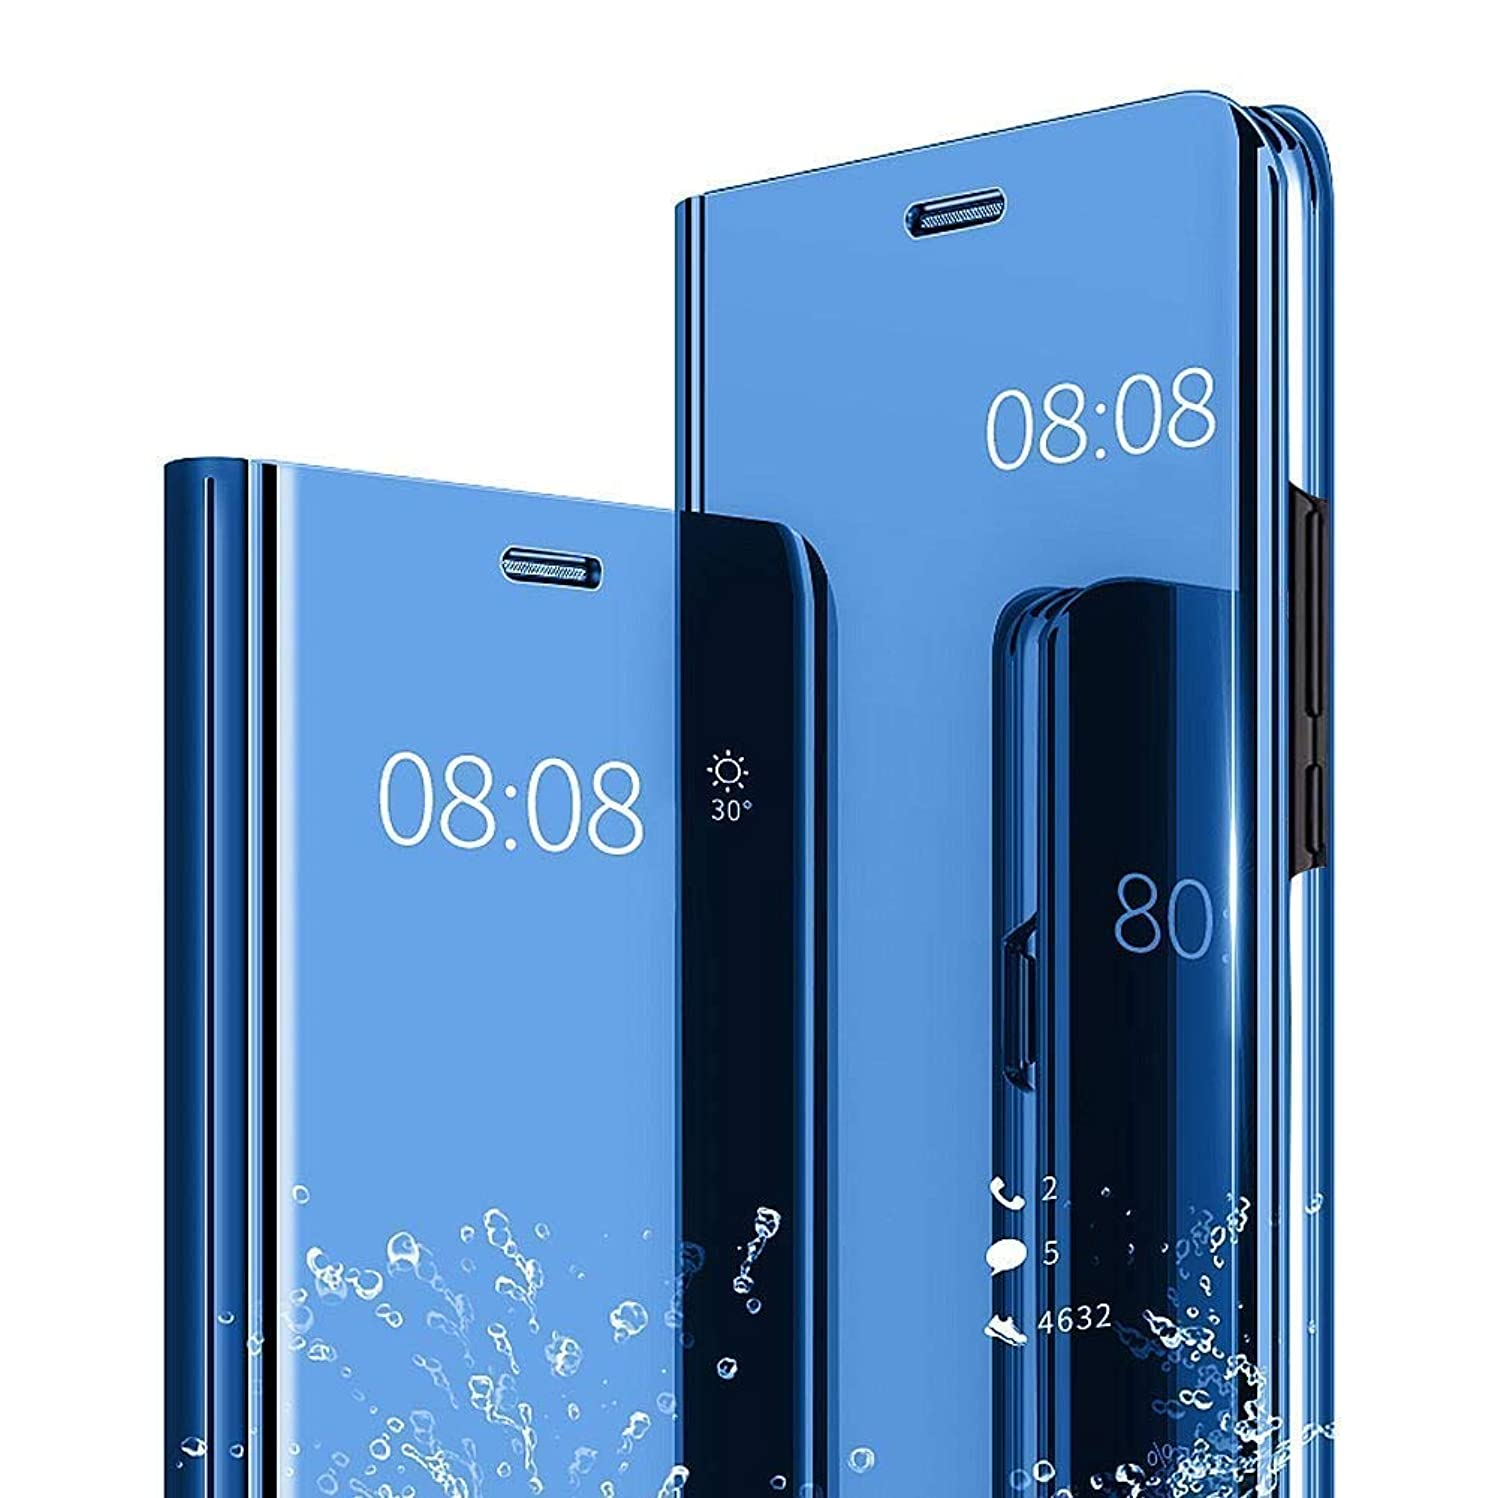 AIsoar iPhone Xs Max Case , Mirror Smart Clear View Window Flip Case Slim Multi-Function Make-Up Mirror Stand flip Folio Full Body Anti-Shock Protection Cover fit iPhone Xs Max 6.5 inch (Blue)